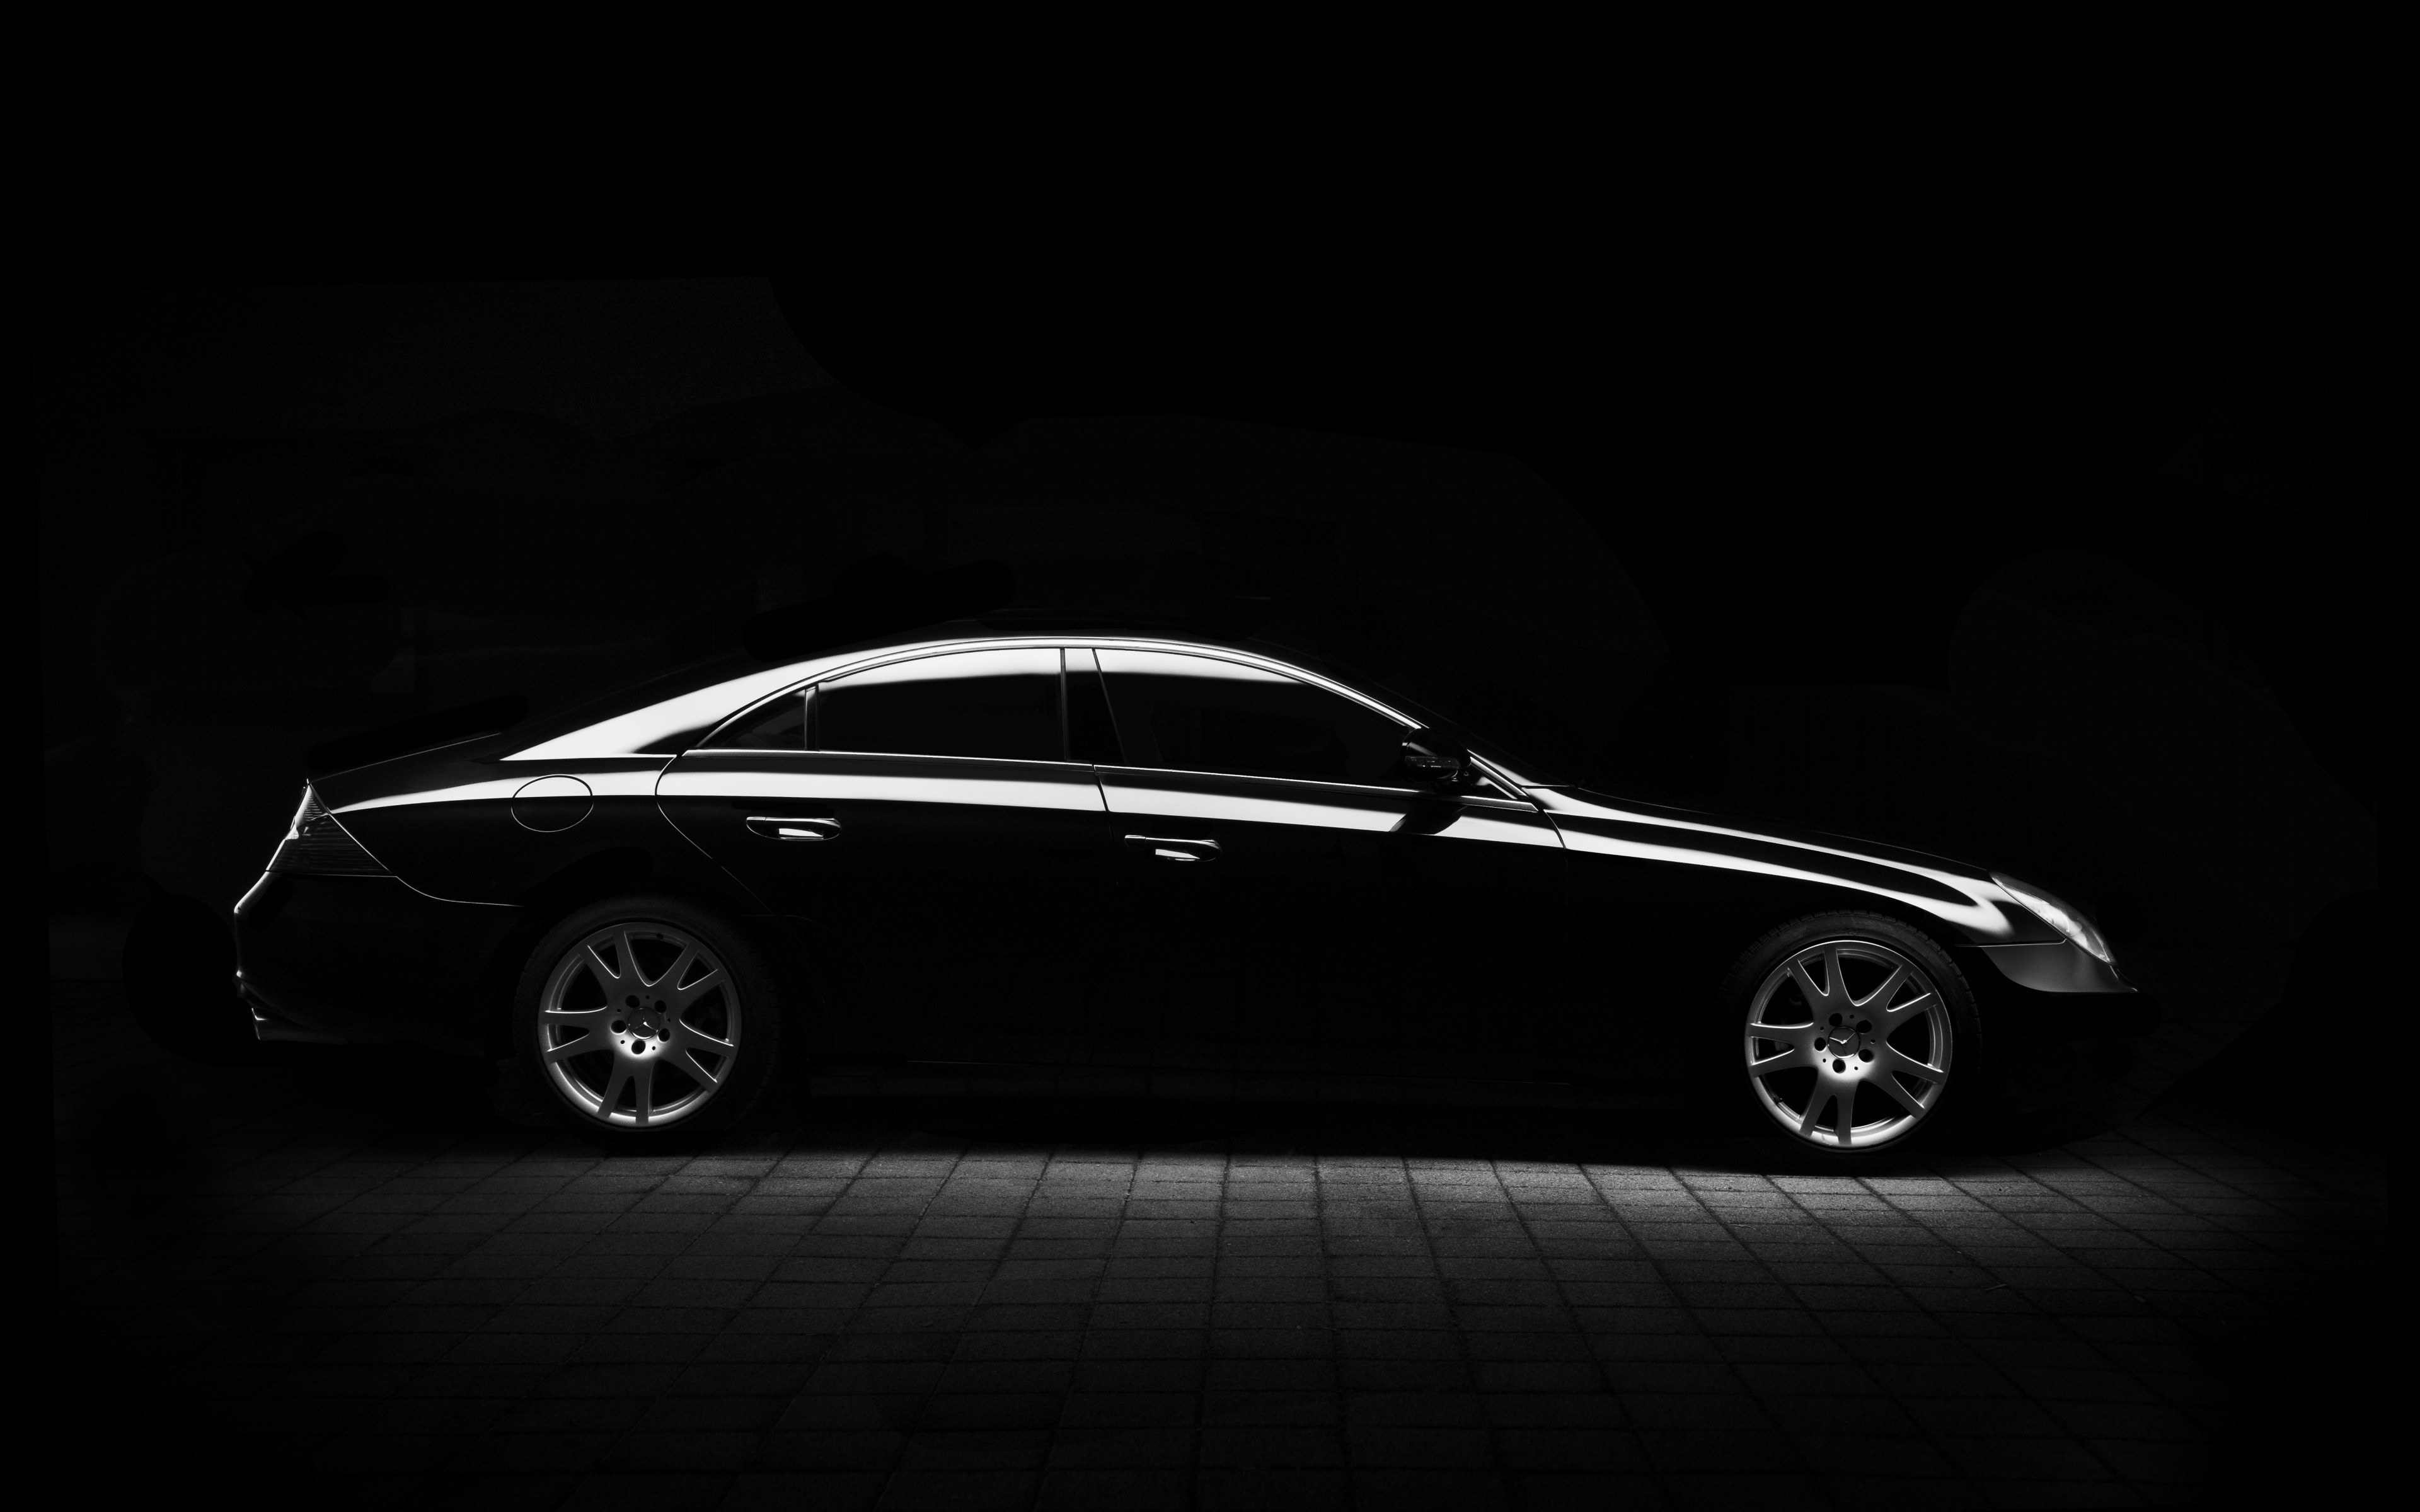 Silhouette of a Mercedes car | 3840x2400 wallpaper